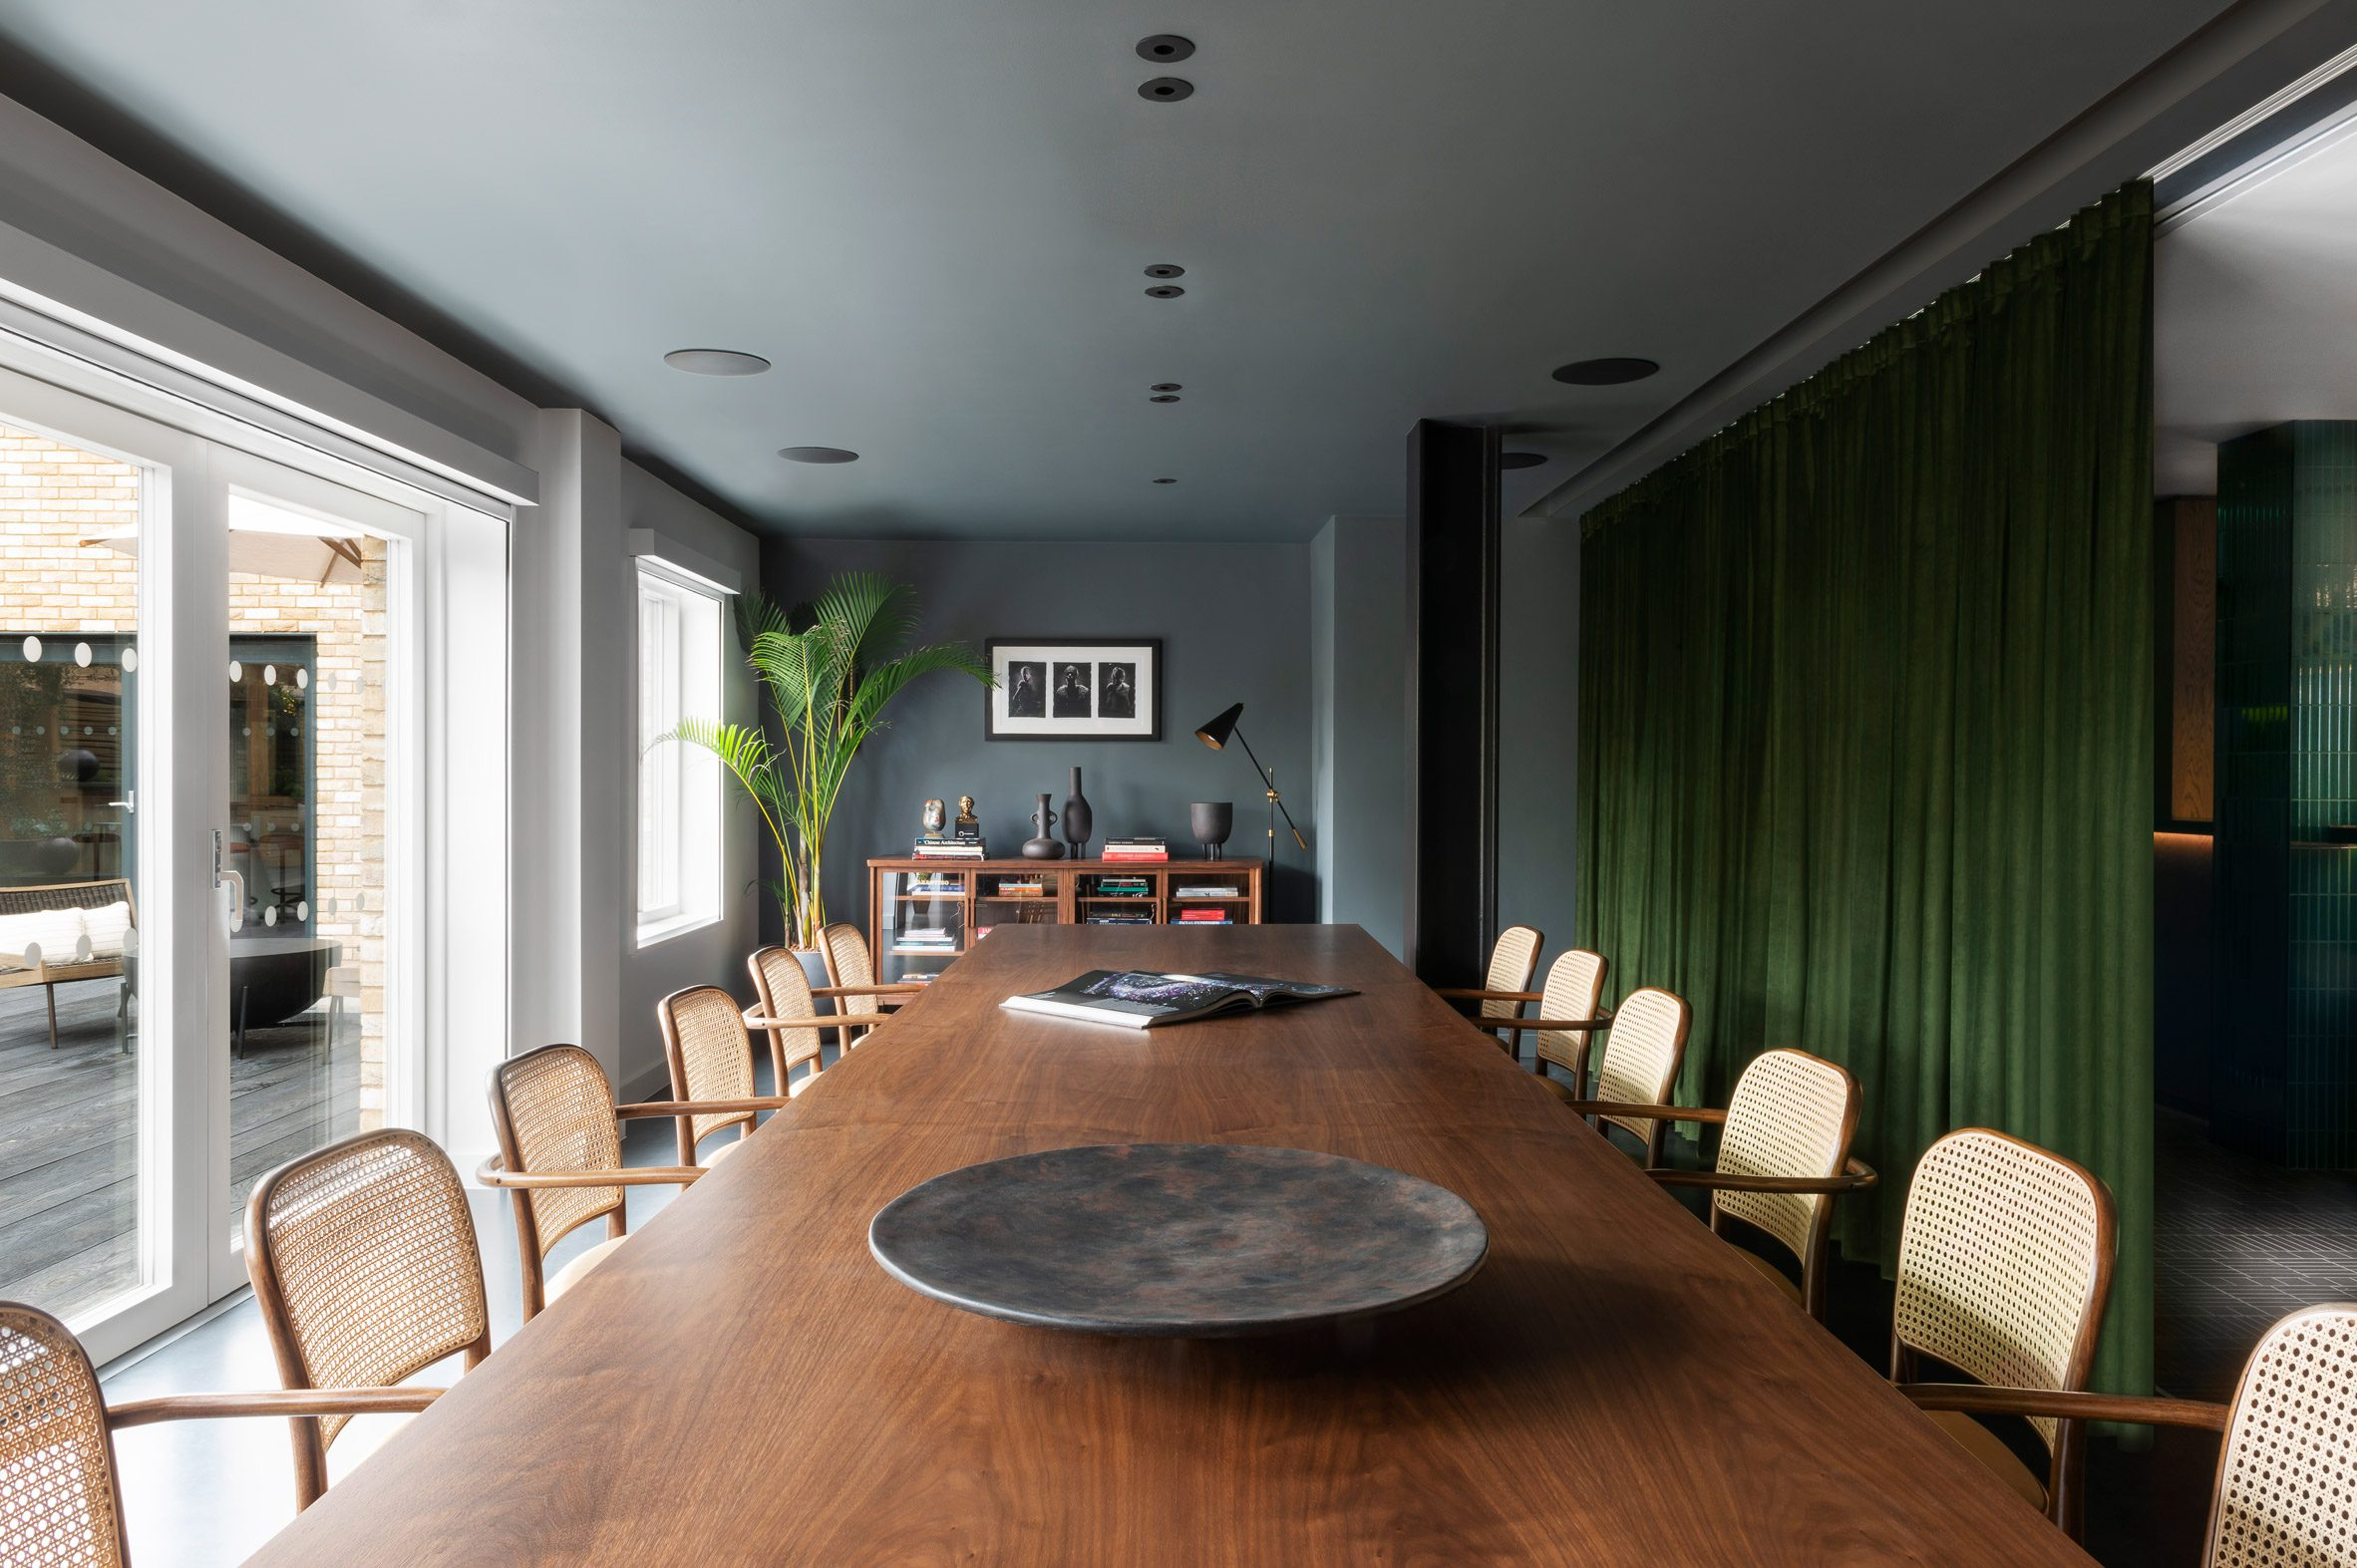 A large meeting table with rattan dining chairs